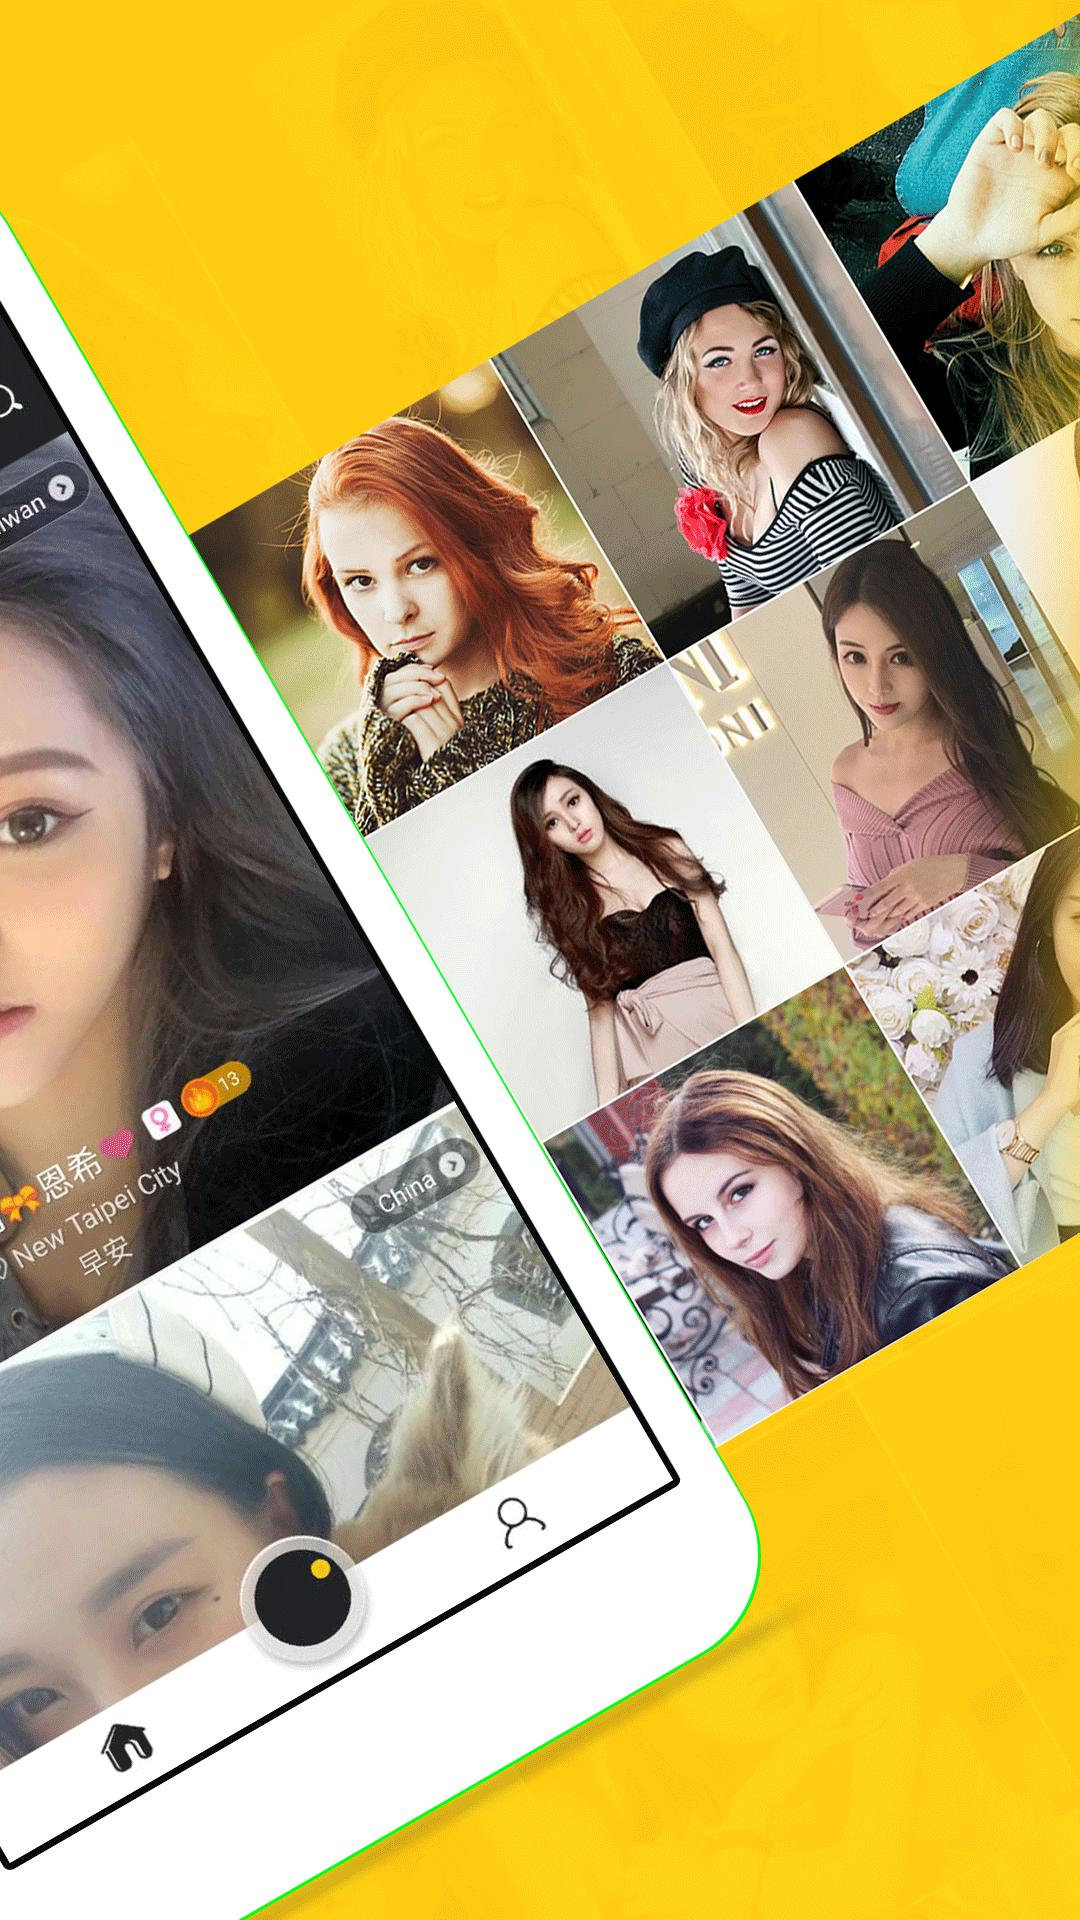 Blonde Live - Live Streaming for Android - APK Download